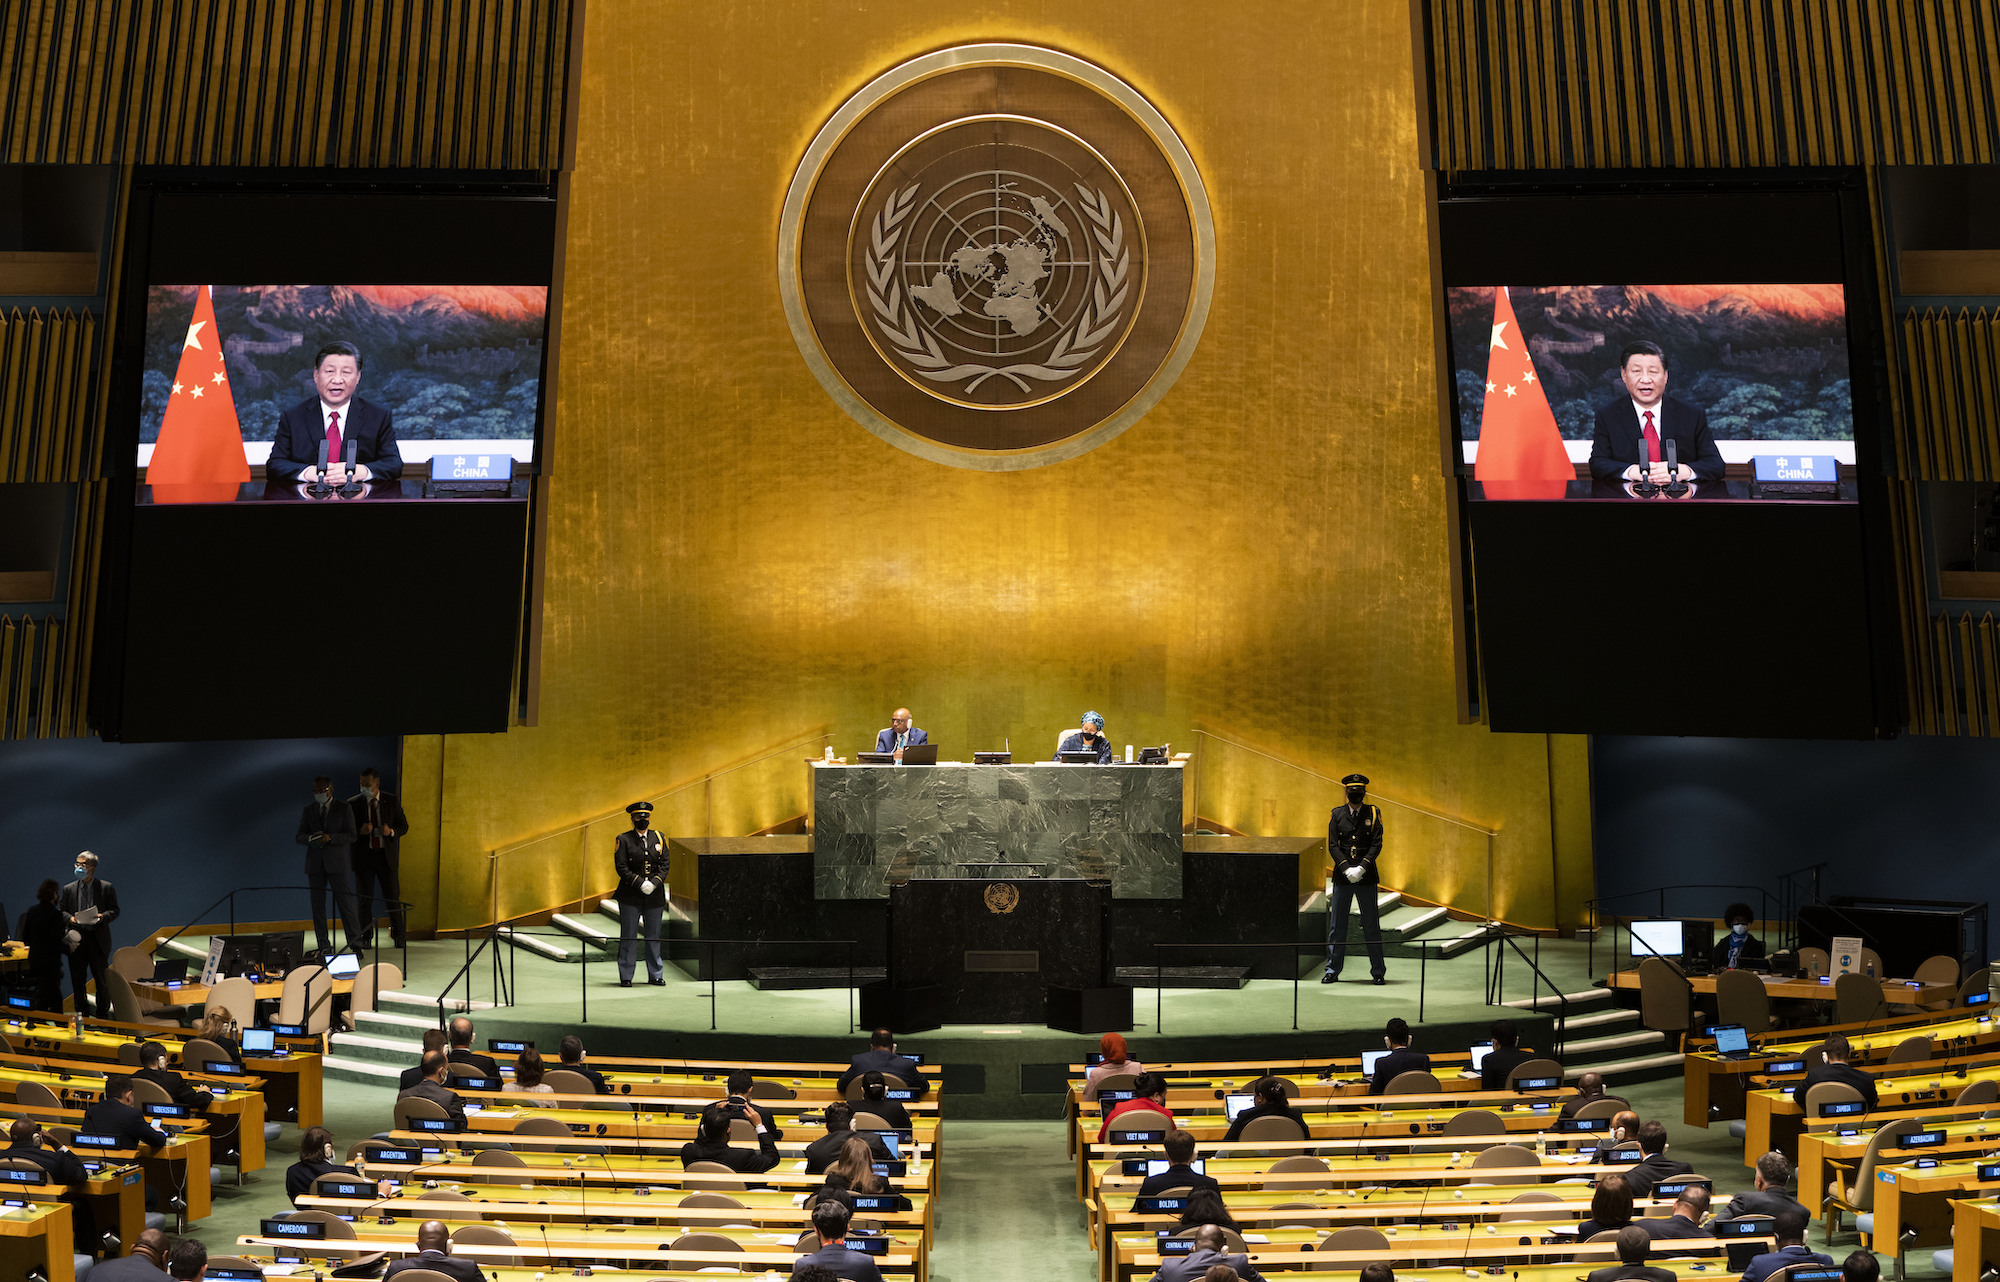 United Nations 2021 General Assembly - President Xi Jinping